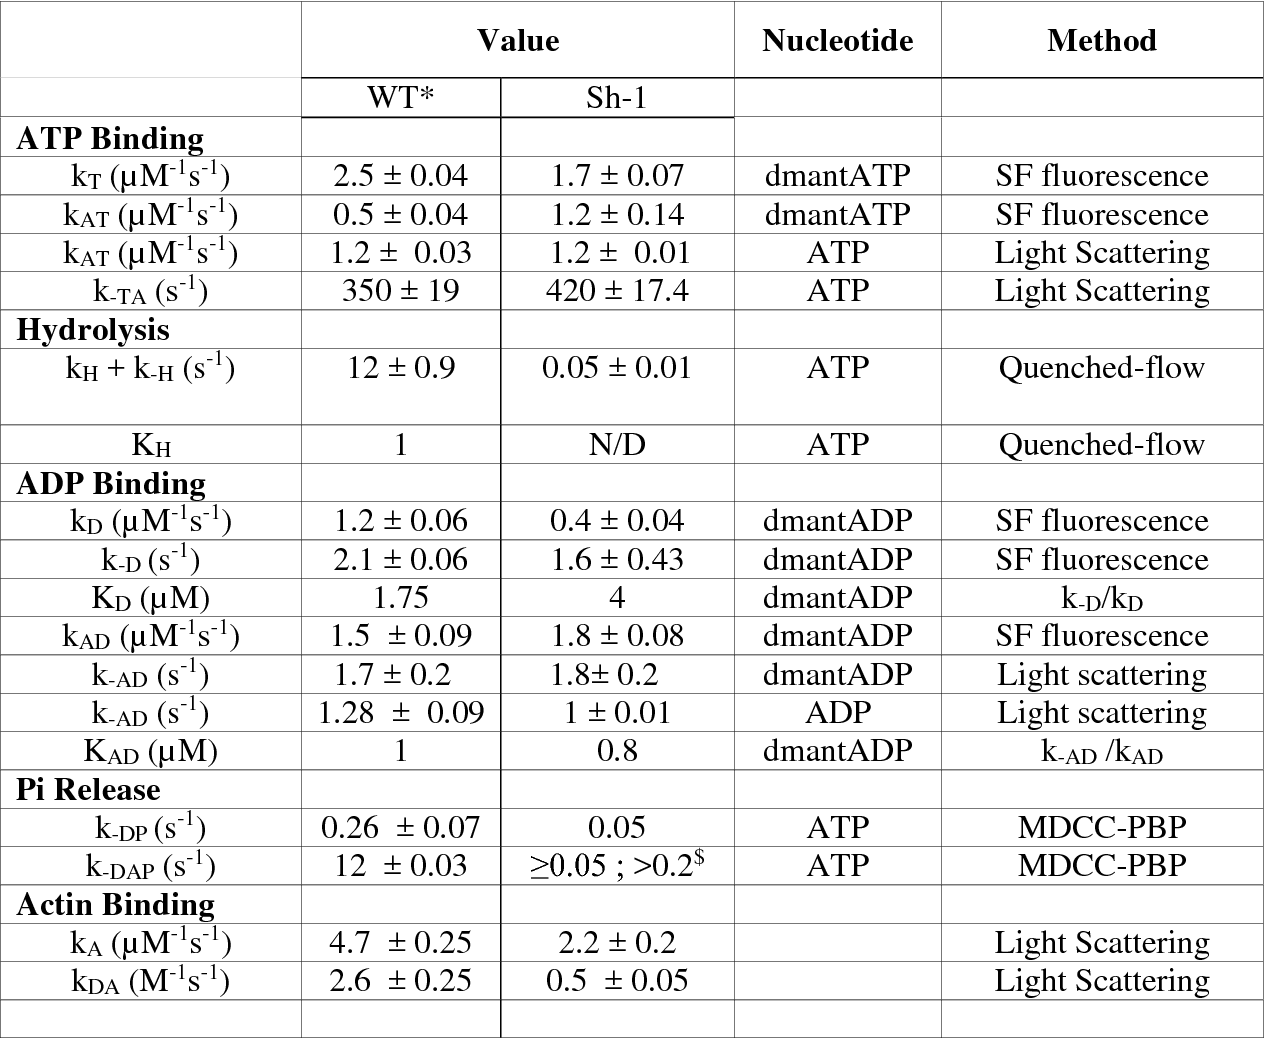 Table 2. Transient Kinetic Parameters